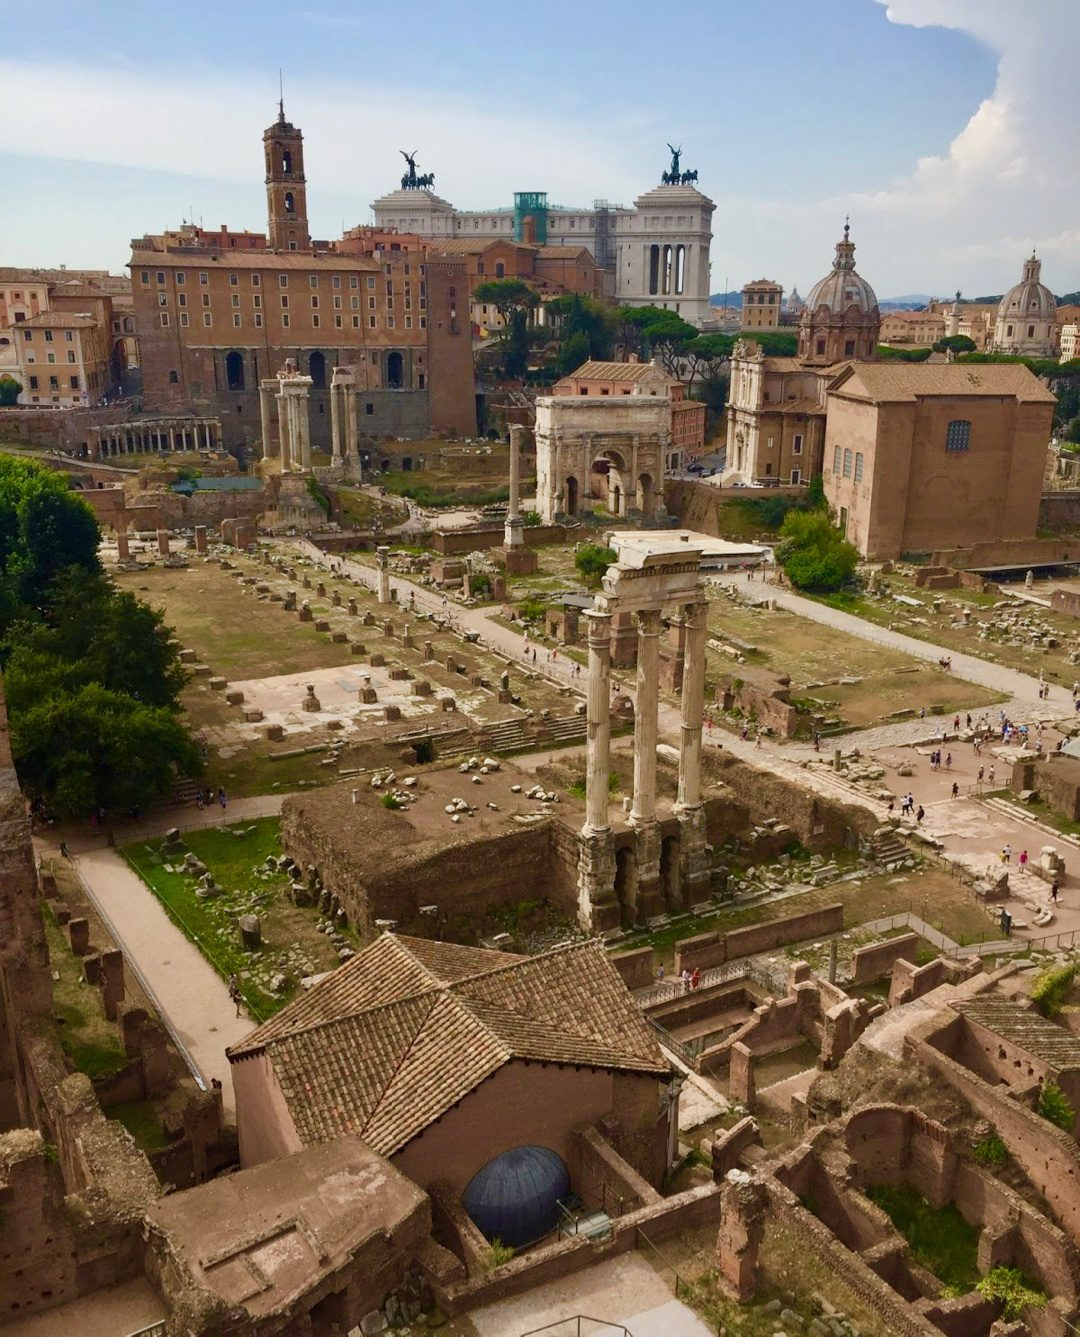 Teacher travel grants for History and Social Studies educators: 6 funded global education programs! The remains of the Forum in Rome, Italy.